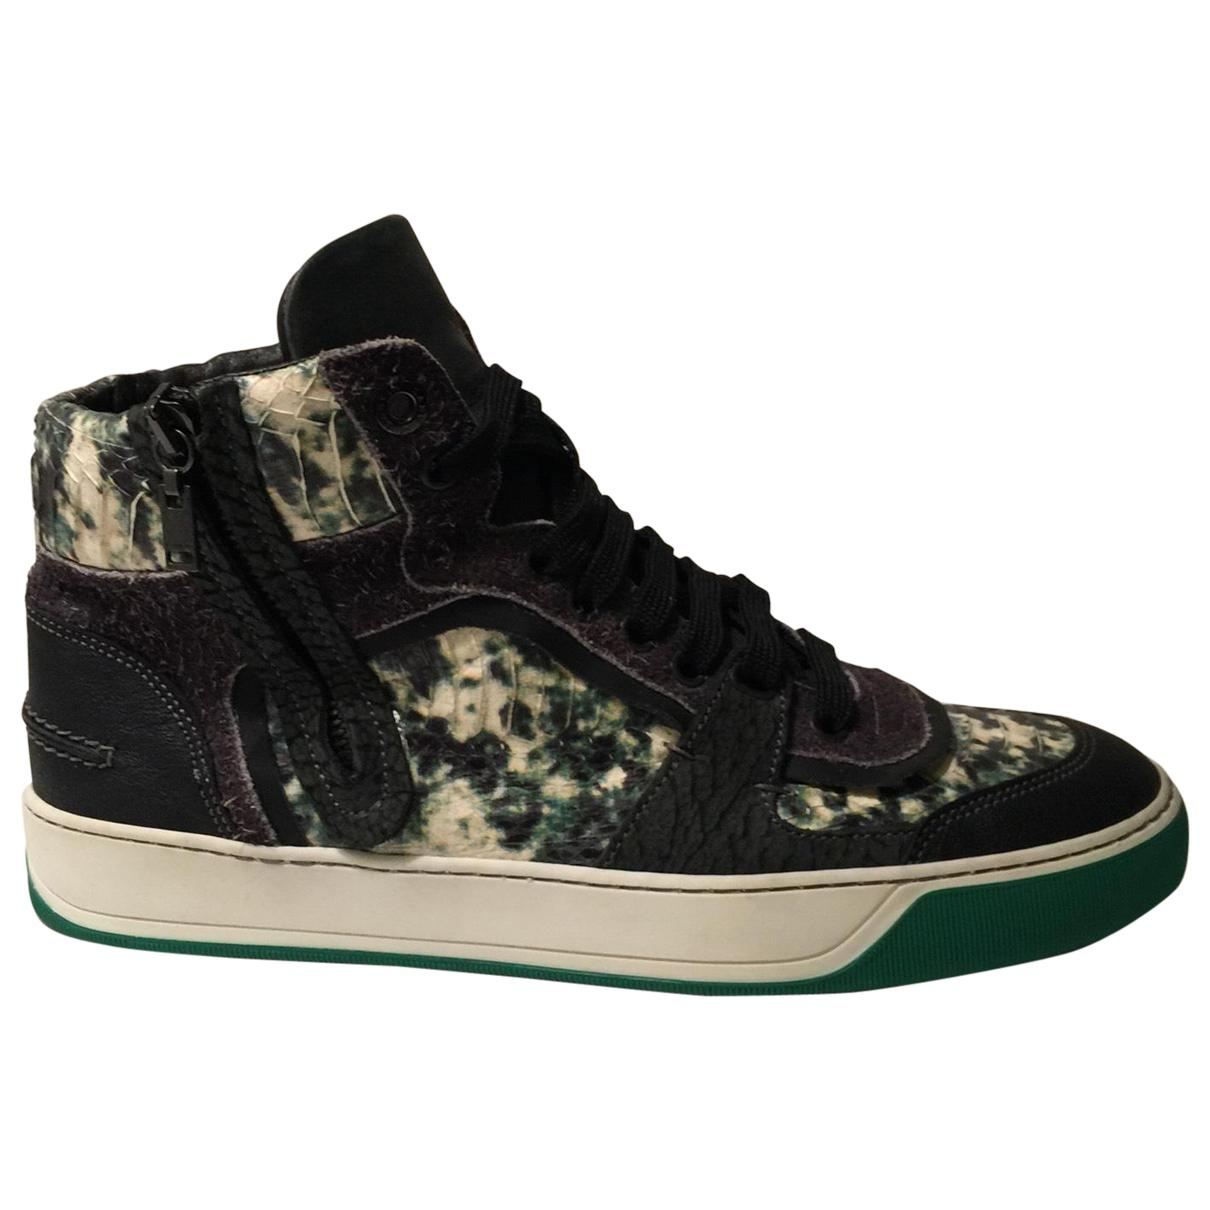 Pre-owned - Python print Leather Trainers Lanvin c9SdmKaOY1